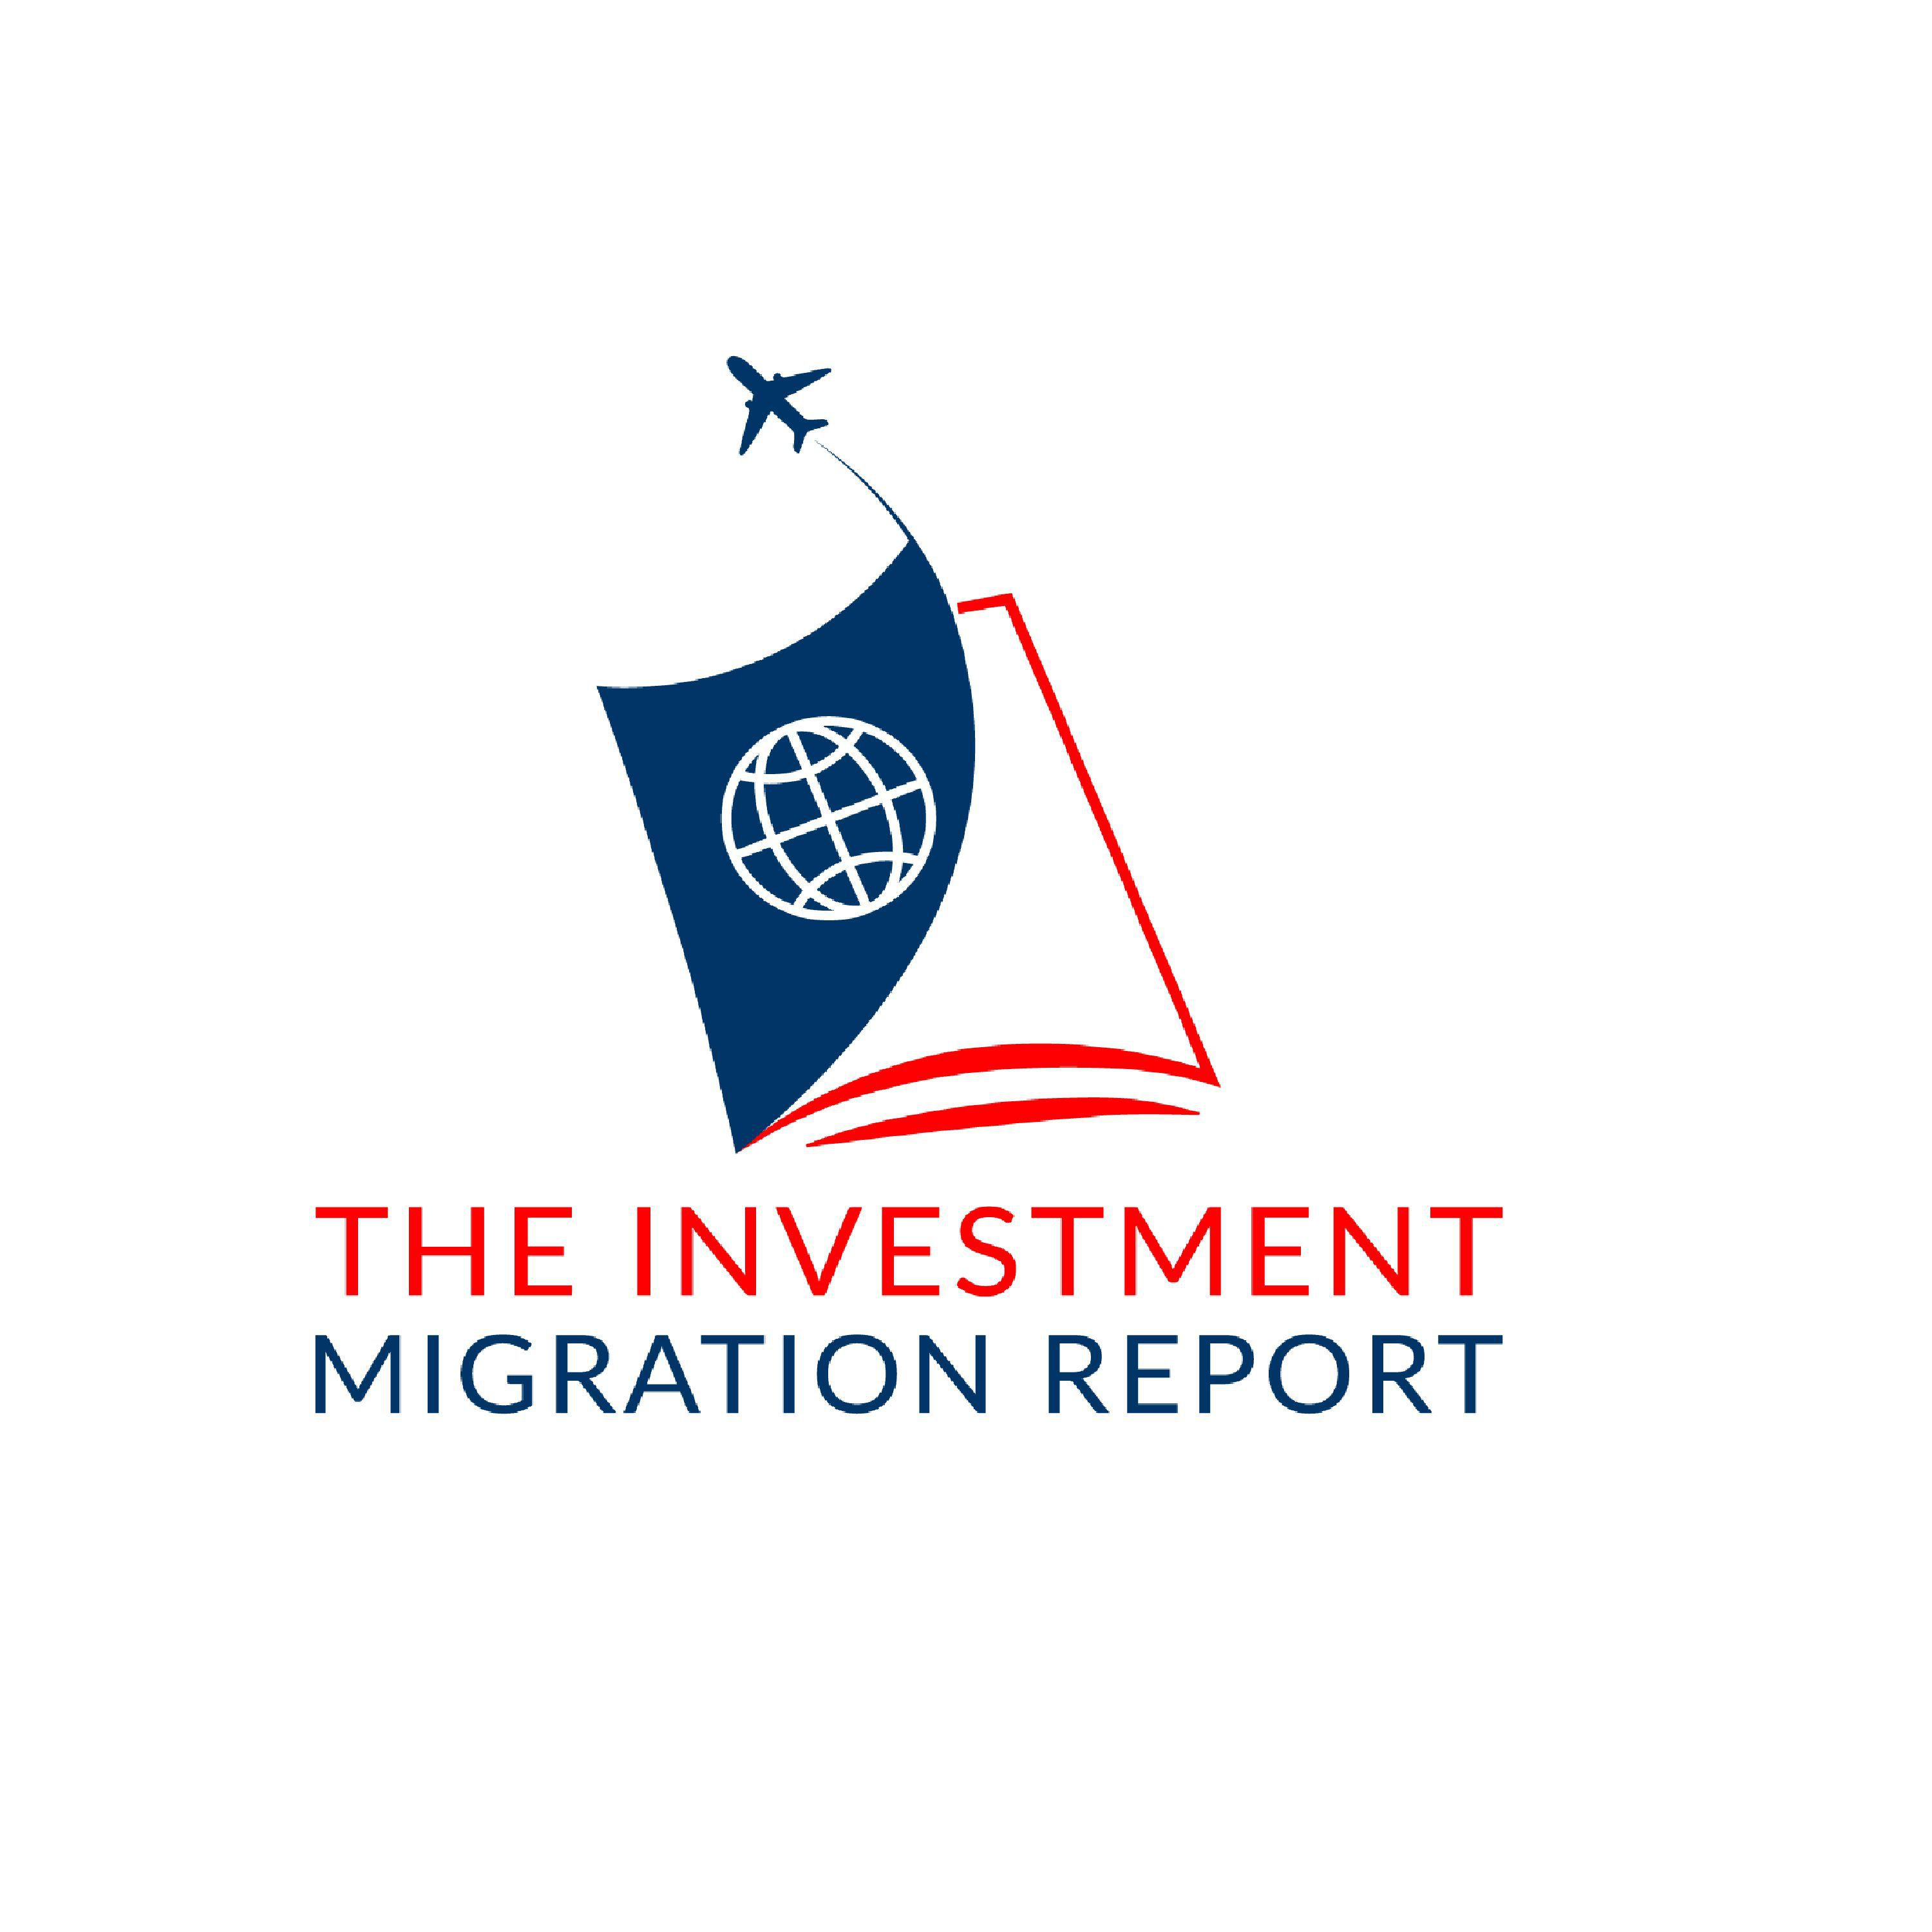 The Investment Migration Report